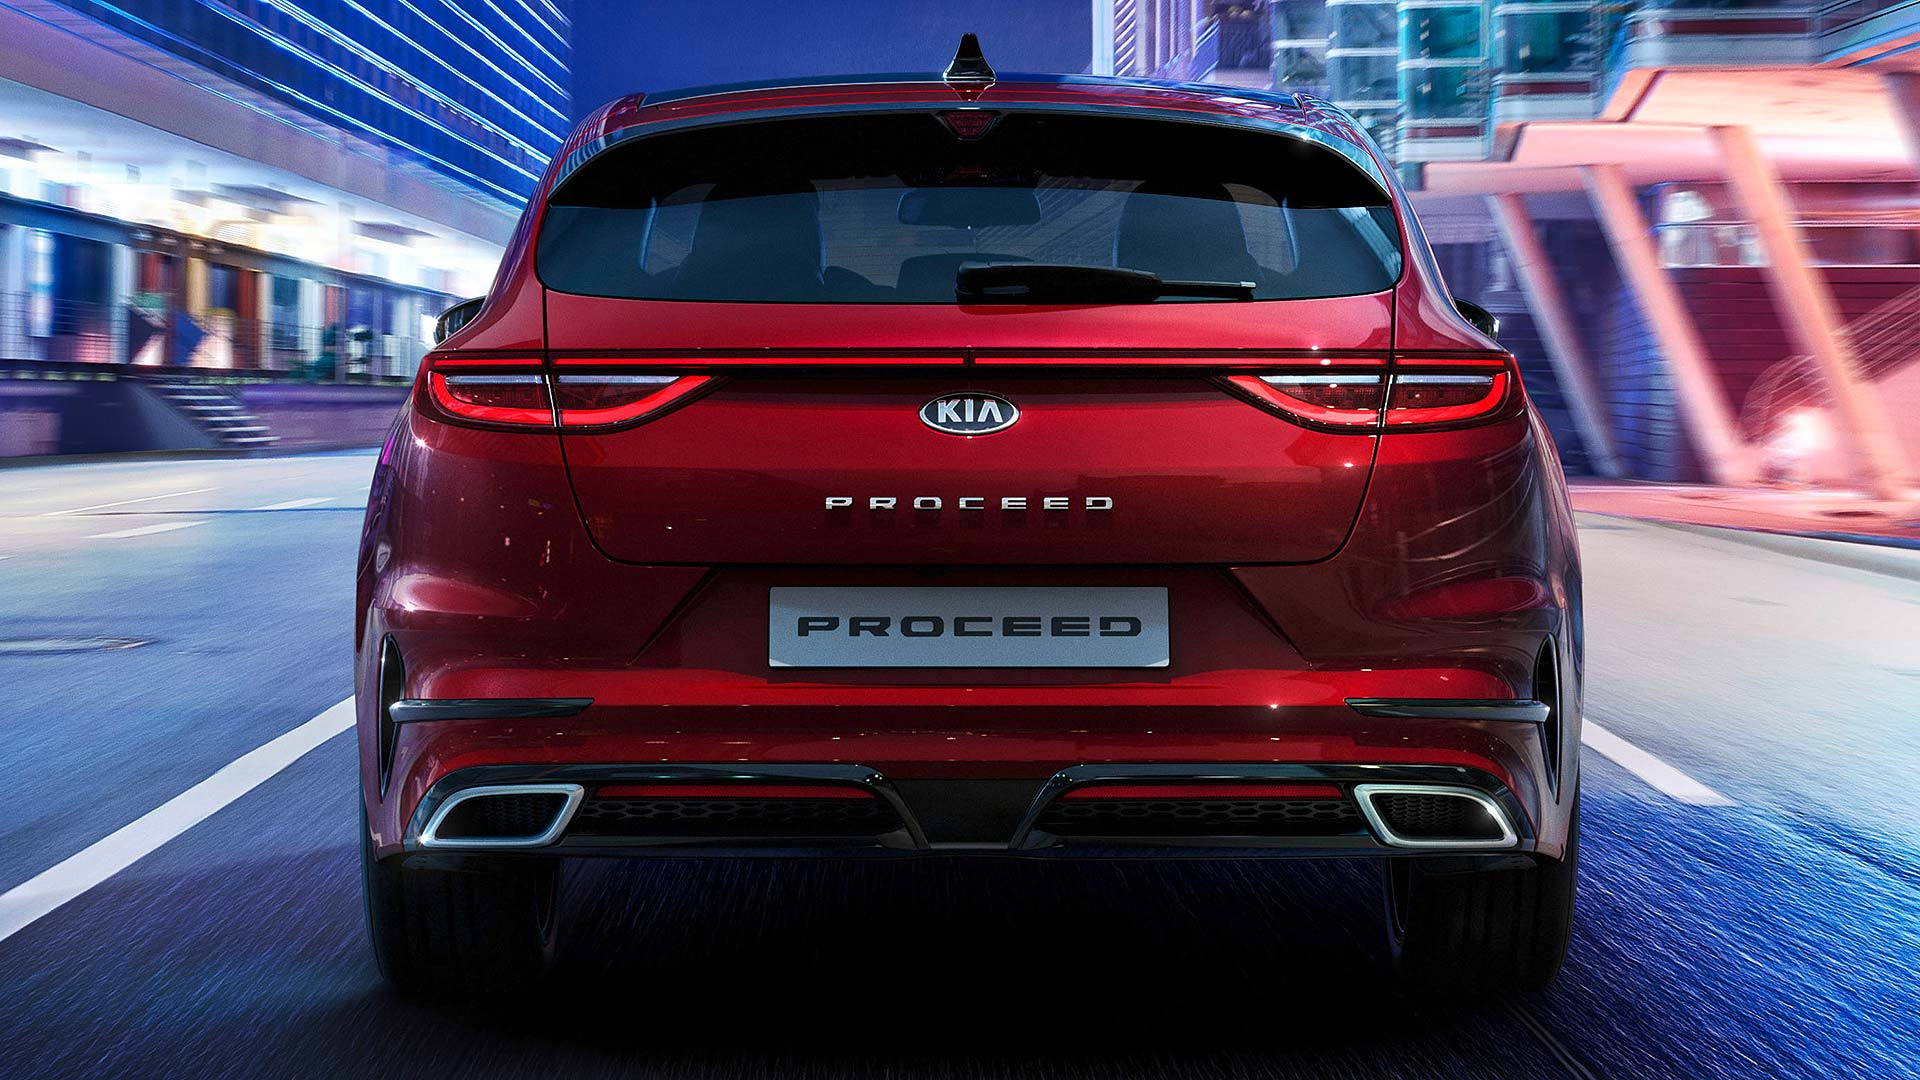 go pro 2019 kia proceed prices revealed motoring research. Black Bedroom Furniture Sets. Home Design Ideas